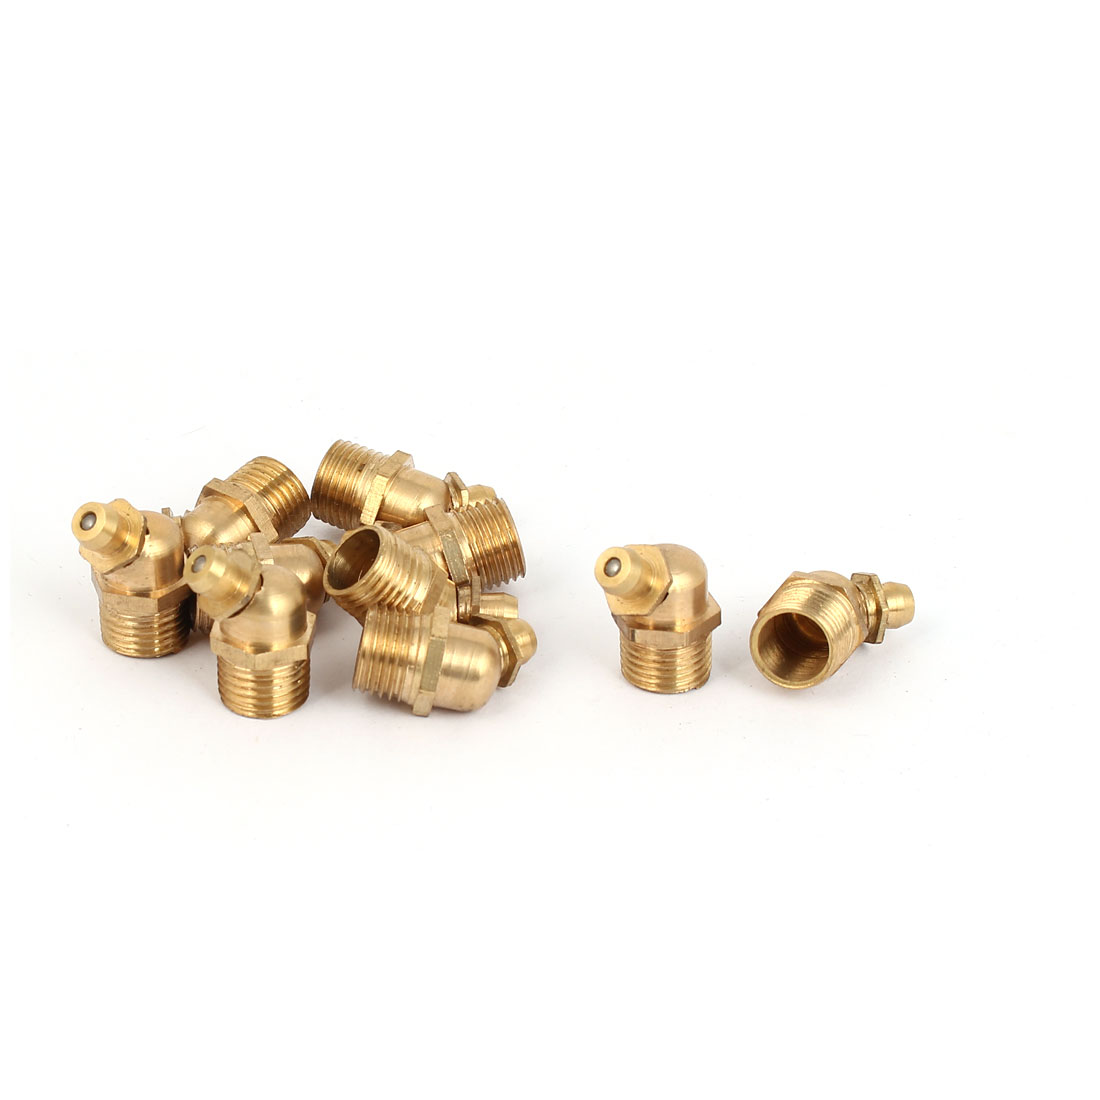 M10 Male Thread 45 Degree Brass Hydraulic Grease Nipple Fittings 10 Pcs